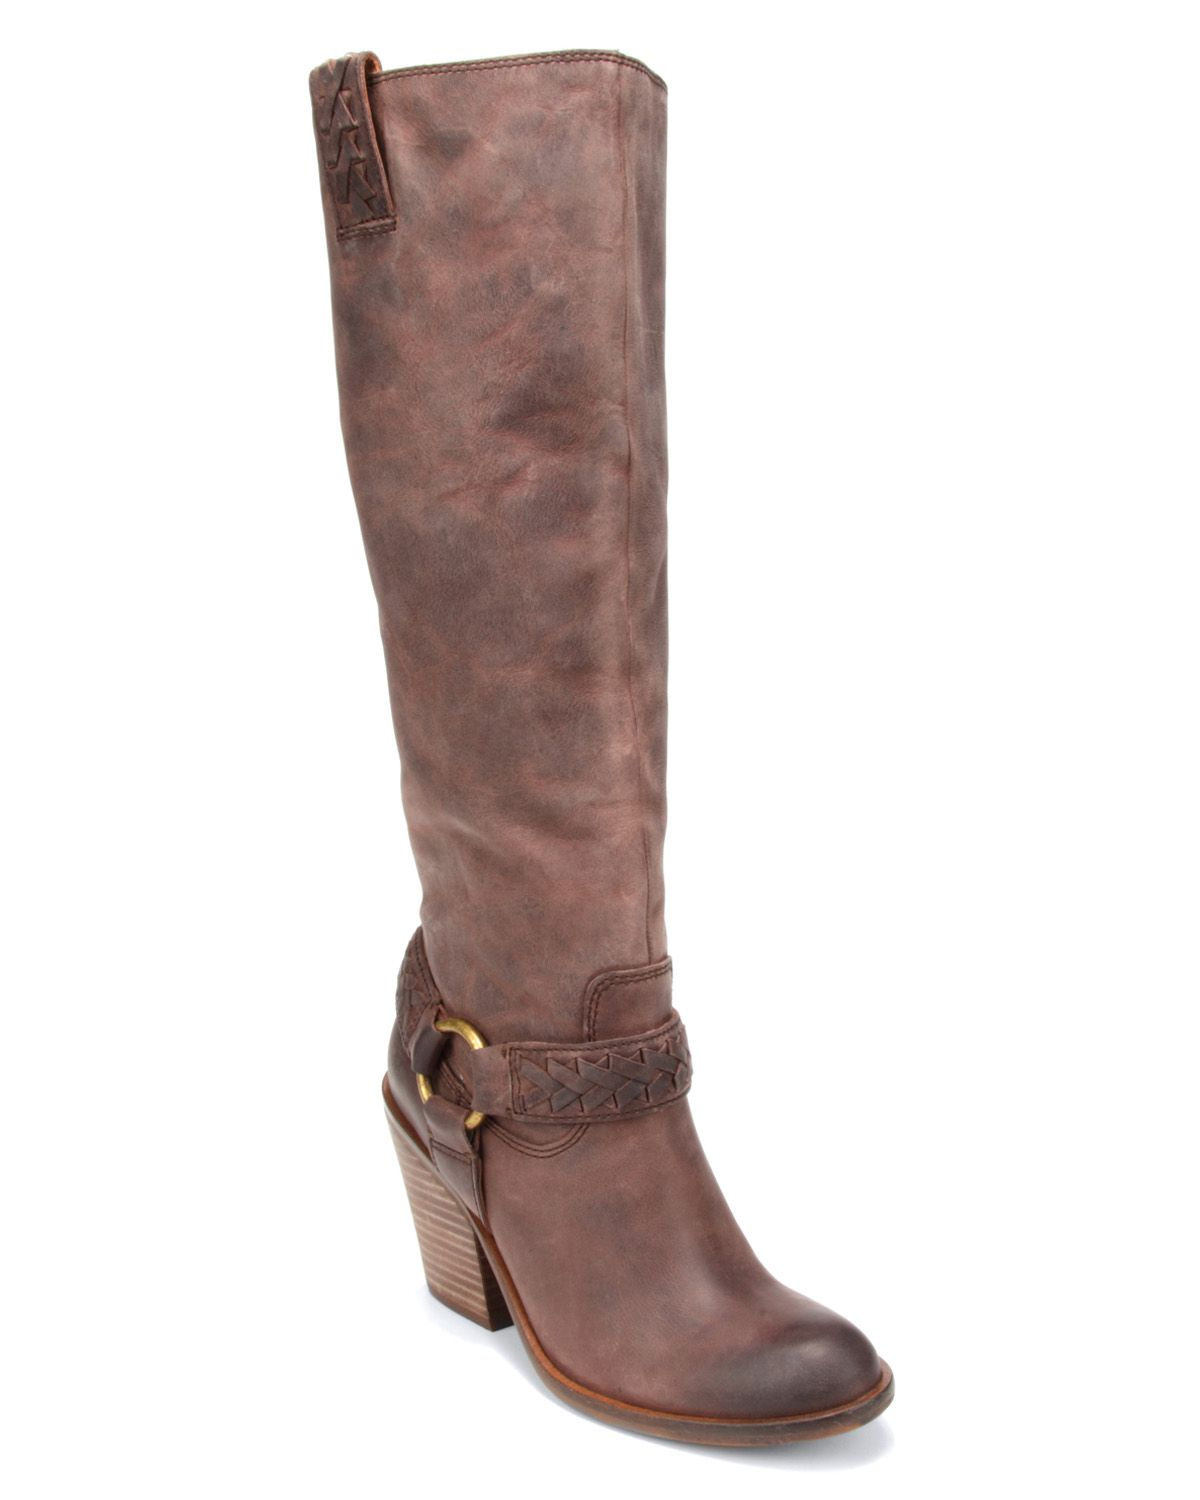 lucky brand western boots ethelda in gray lavender